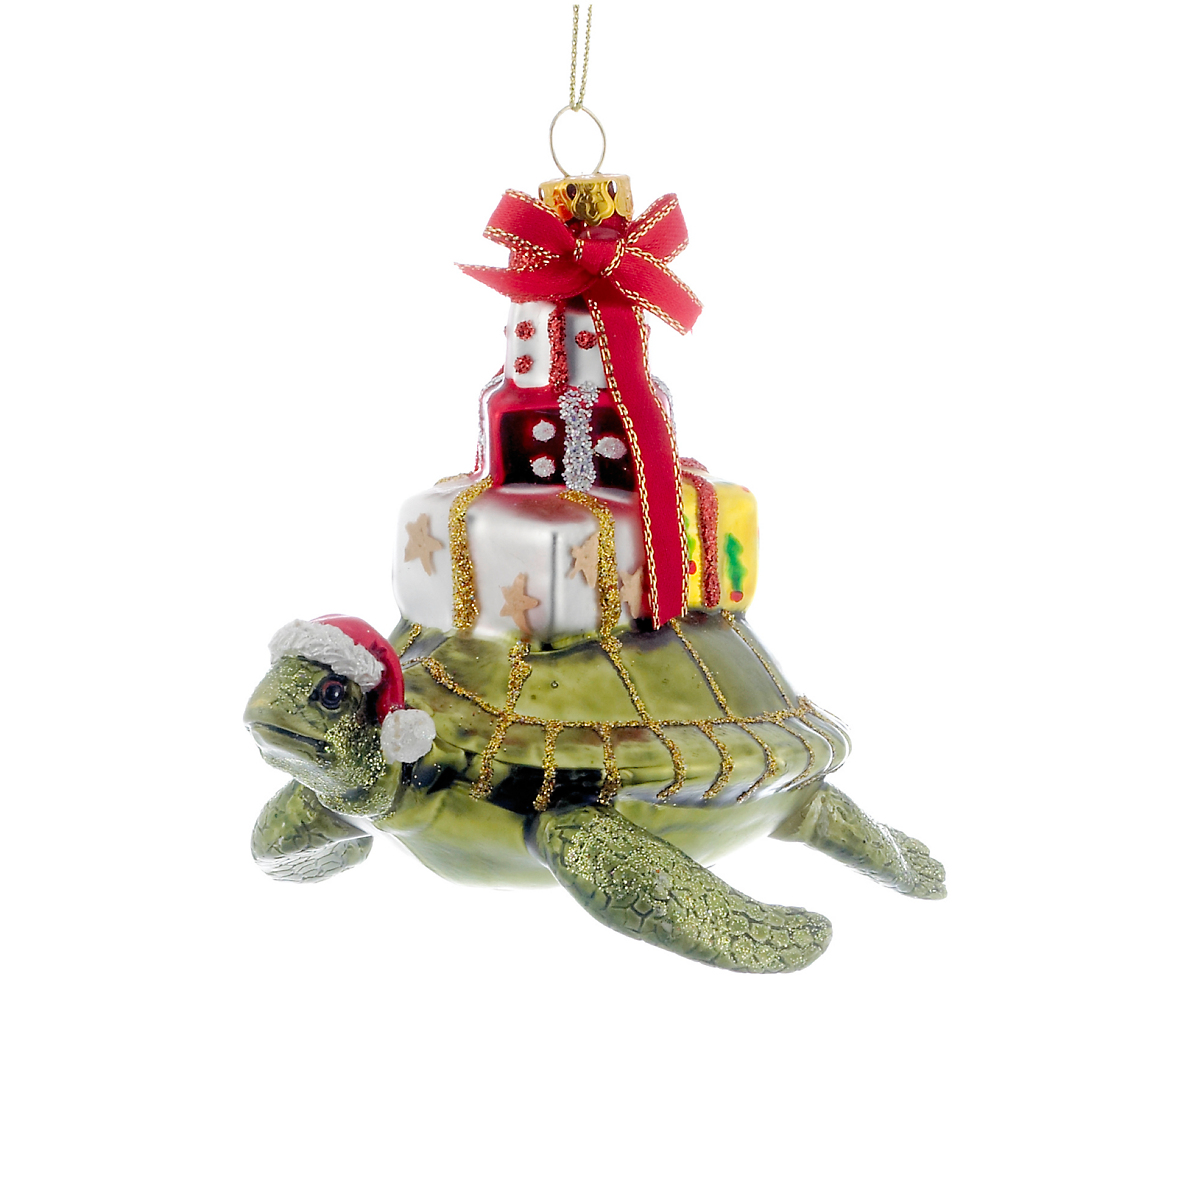 Sea Turtle with Gifts Christmas Ornament | Gump's